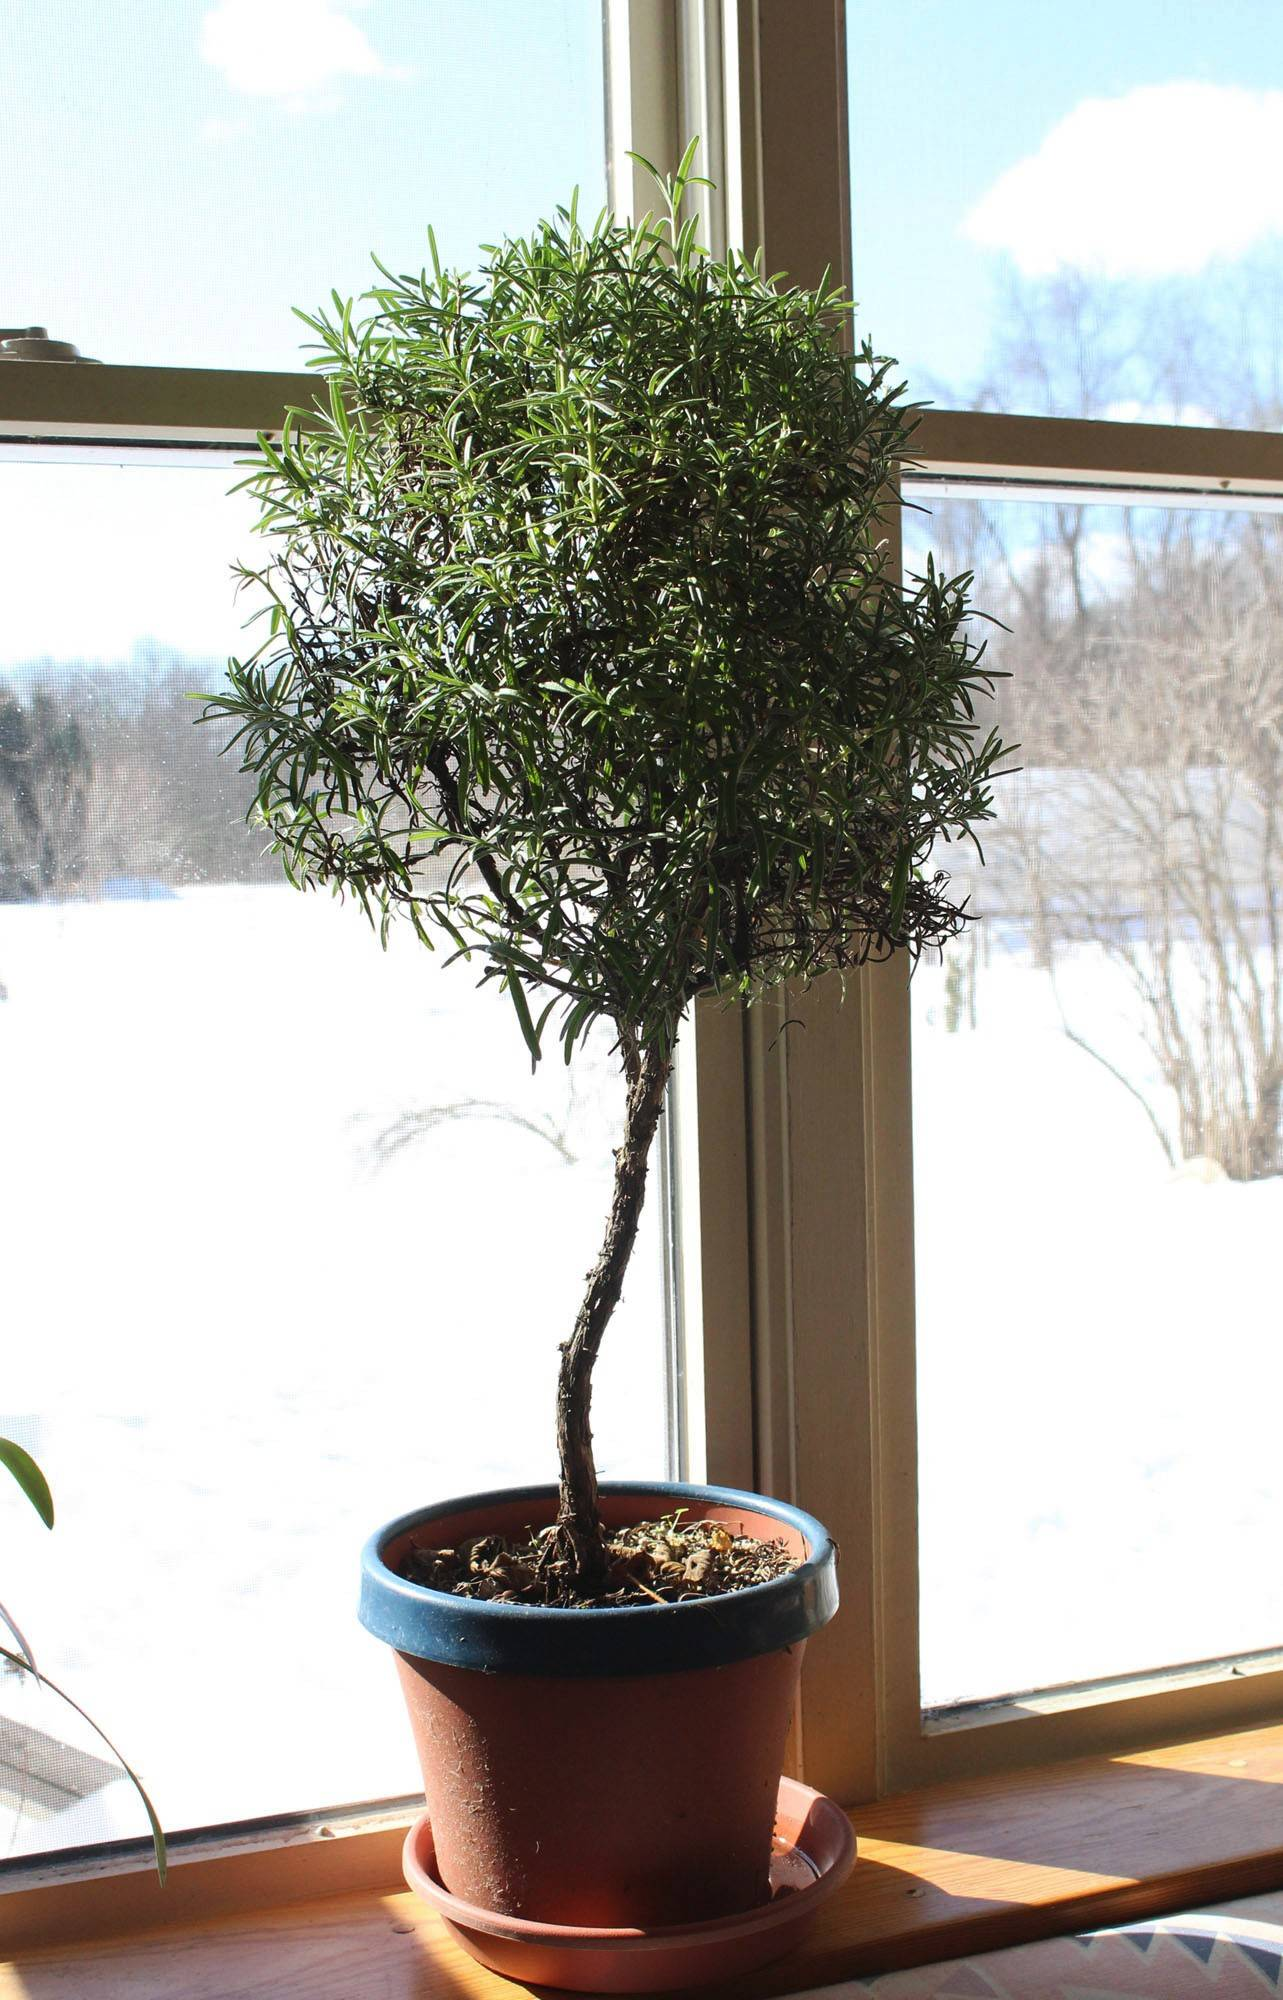 "A small rosemary ""tree"" sits on a windowsill and provides beauty, fragrance and flavoring for the kitchen despite the snowy background."